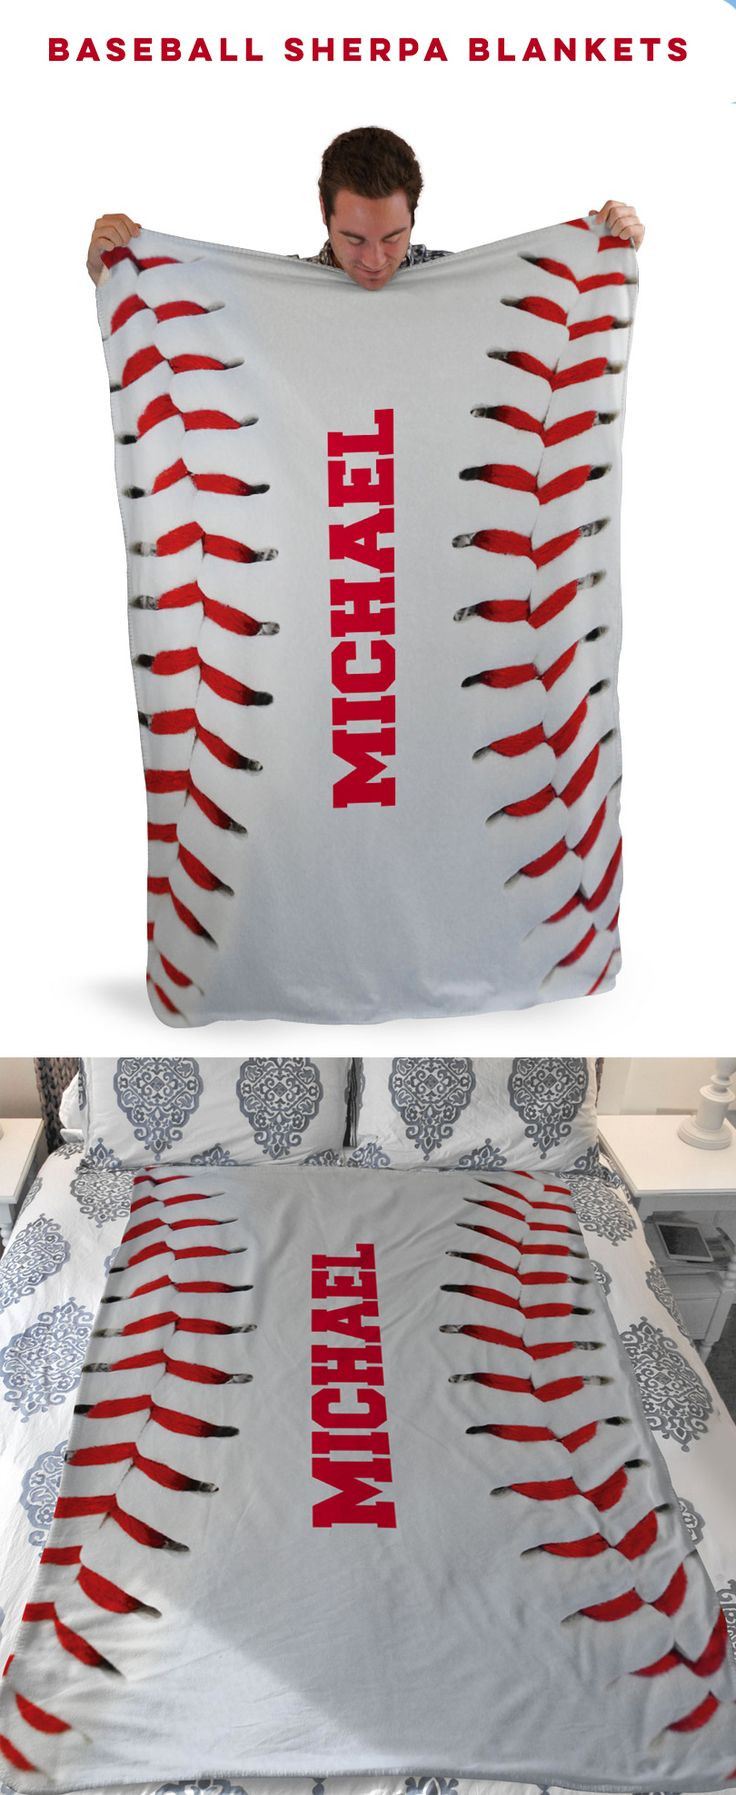 Best 25+ Baseball teams ideas on Pinterest | Baseball snacks ...